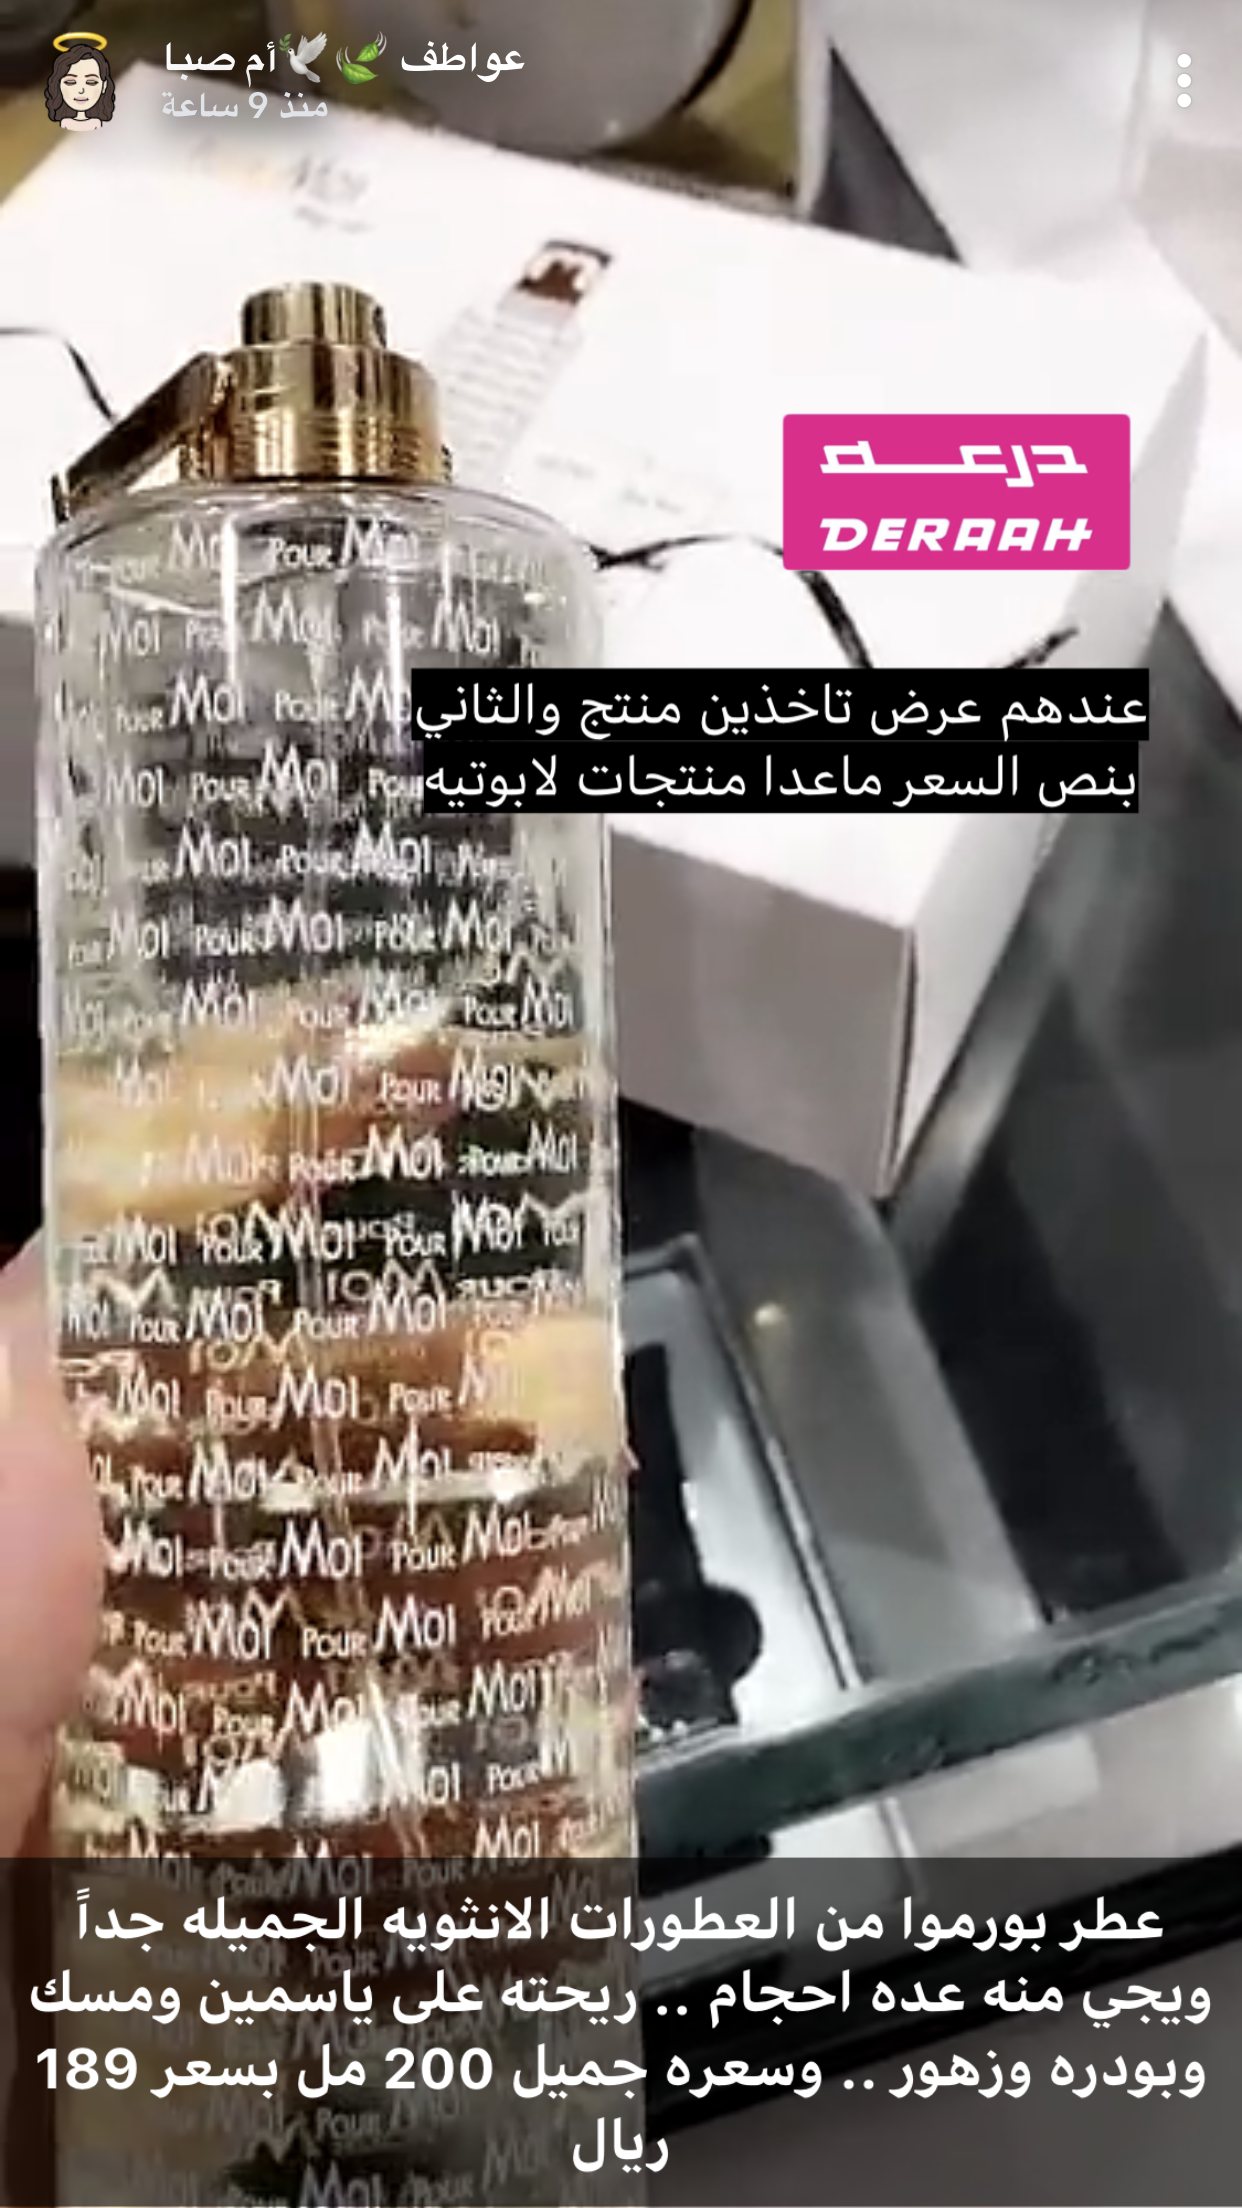 Pin by Noor on انوثة in 2019 | Perfume making, Hair makeup